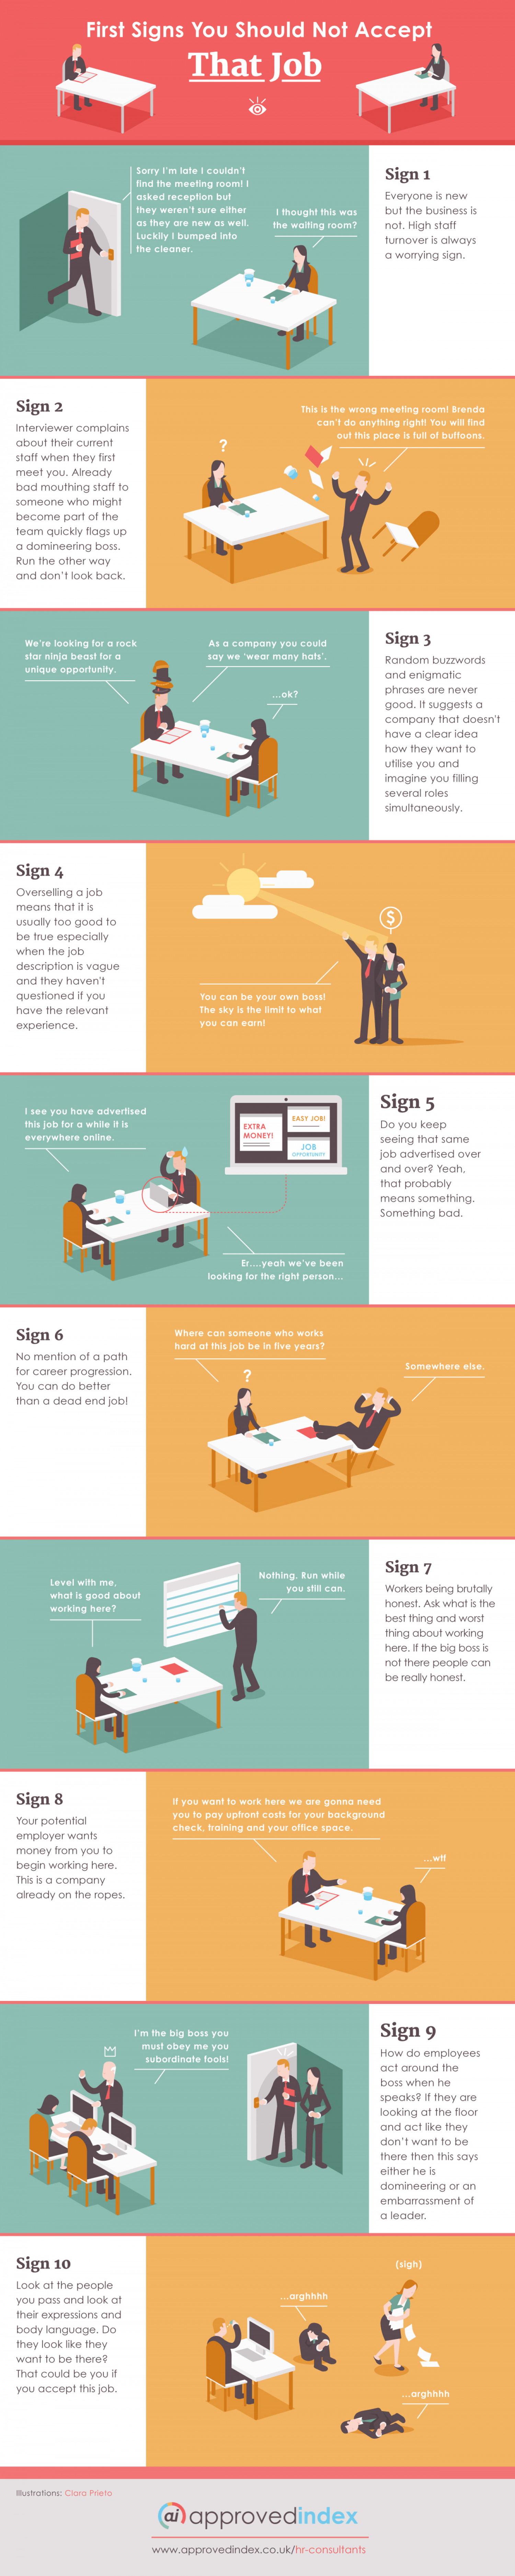 First Signs That You Should Not Take That Job Infographic